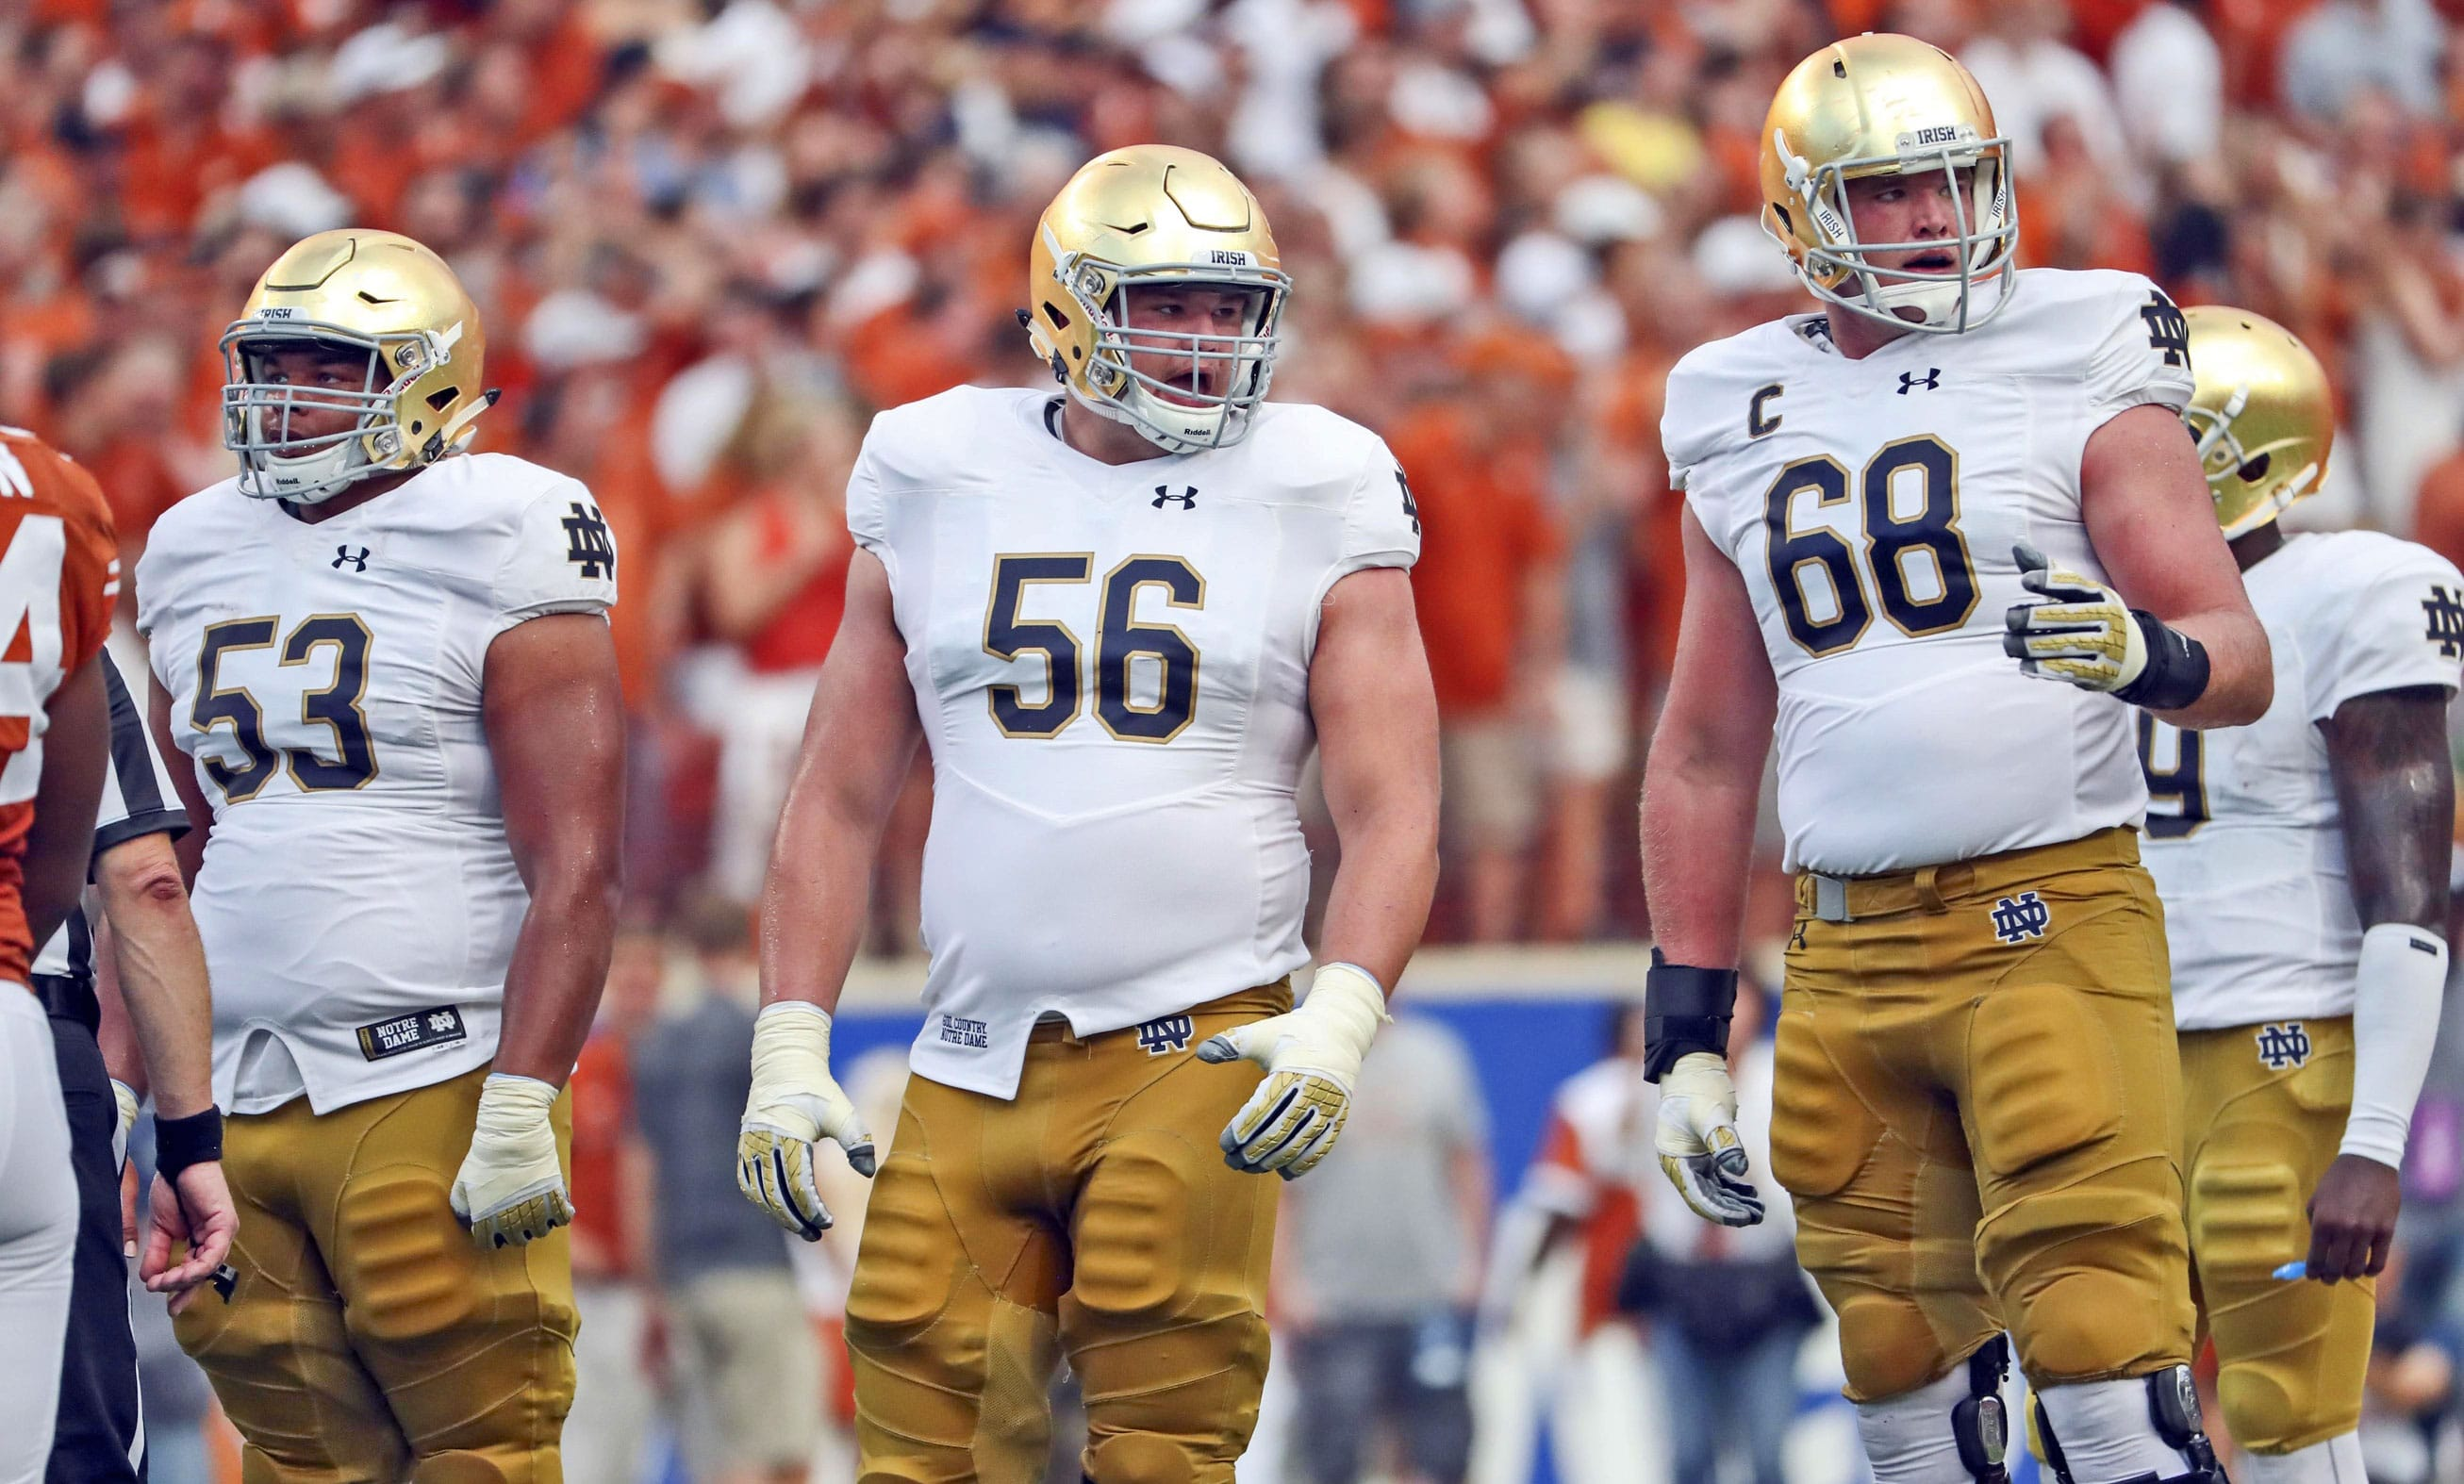 Notre Dame Football Schedule 2019 >> Spring Football '17: Gauging The Talent On The Notre Dame Roster // UHND.com